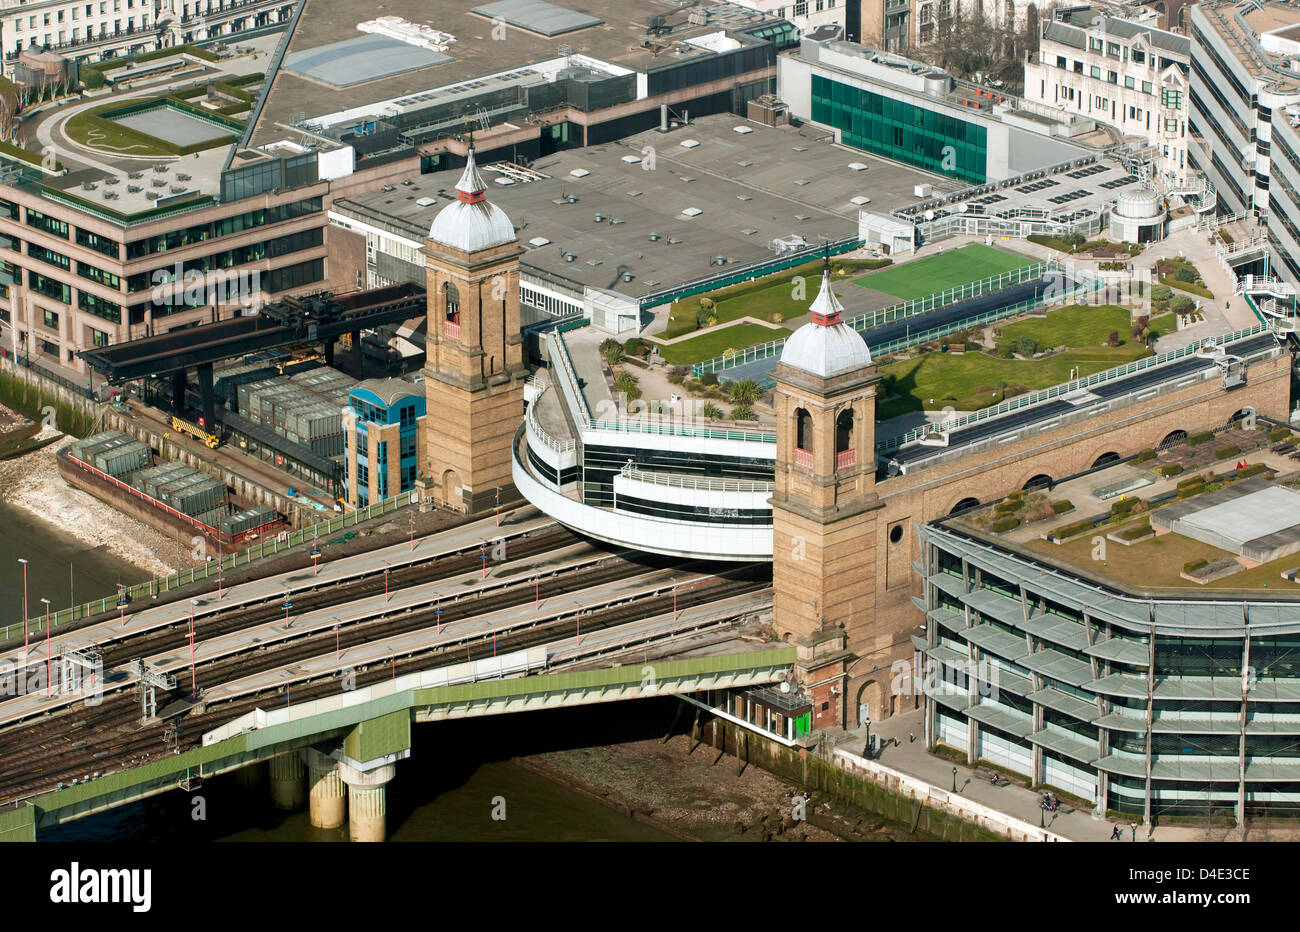 Aerial view of Cannon Street Station on the north bank of the river Thames - Stock Image